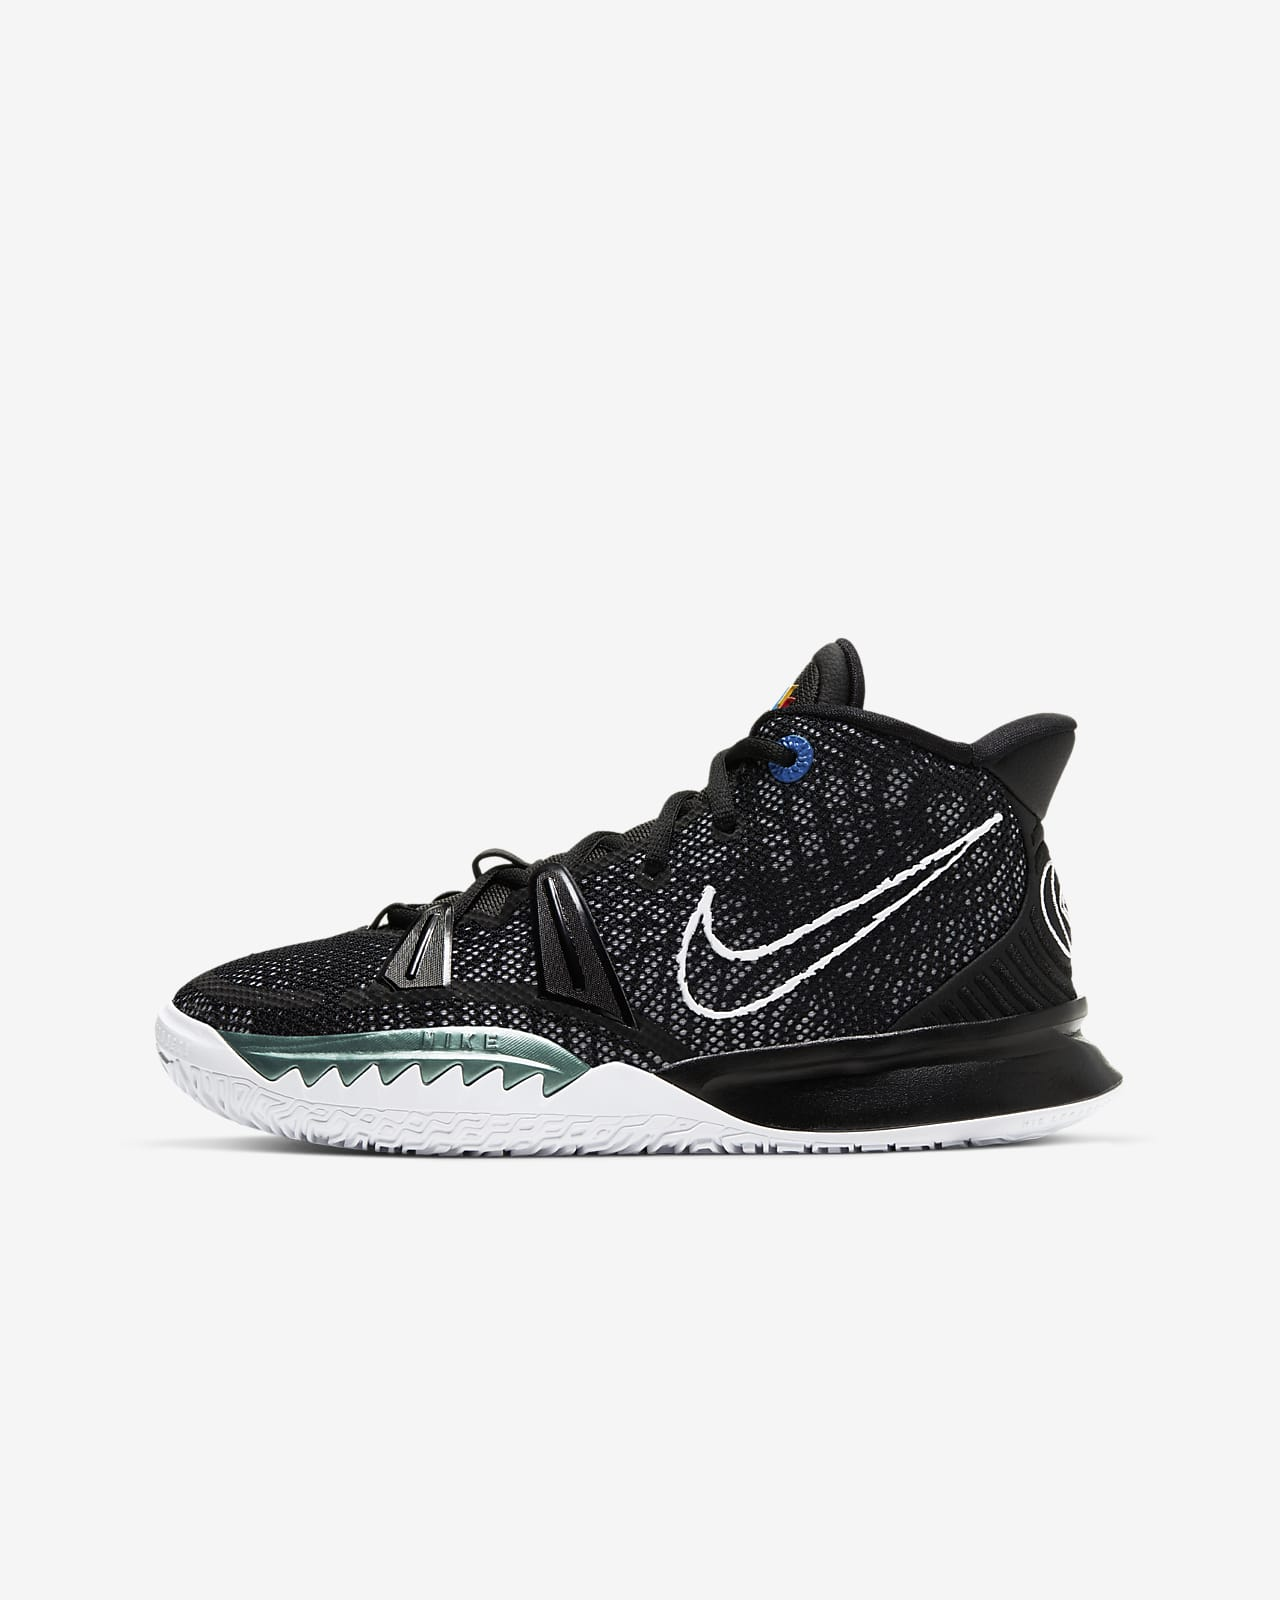 Kyrie 7 Older Kids' Basketball Shoe